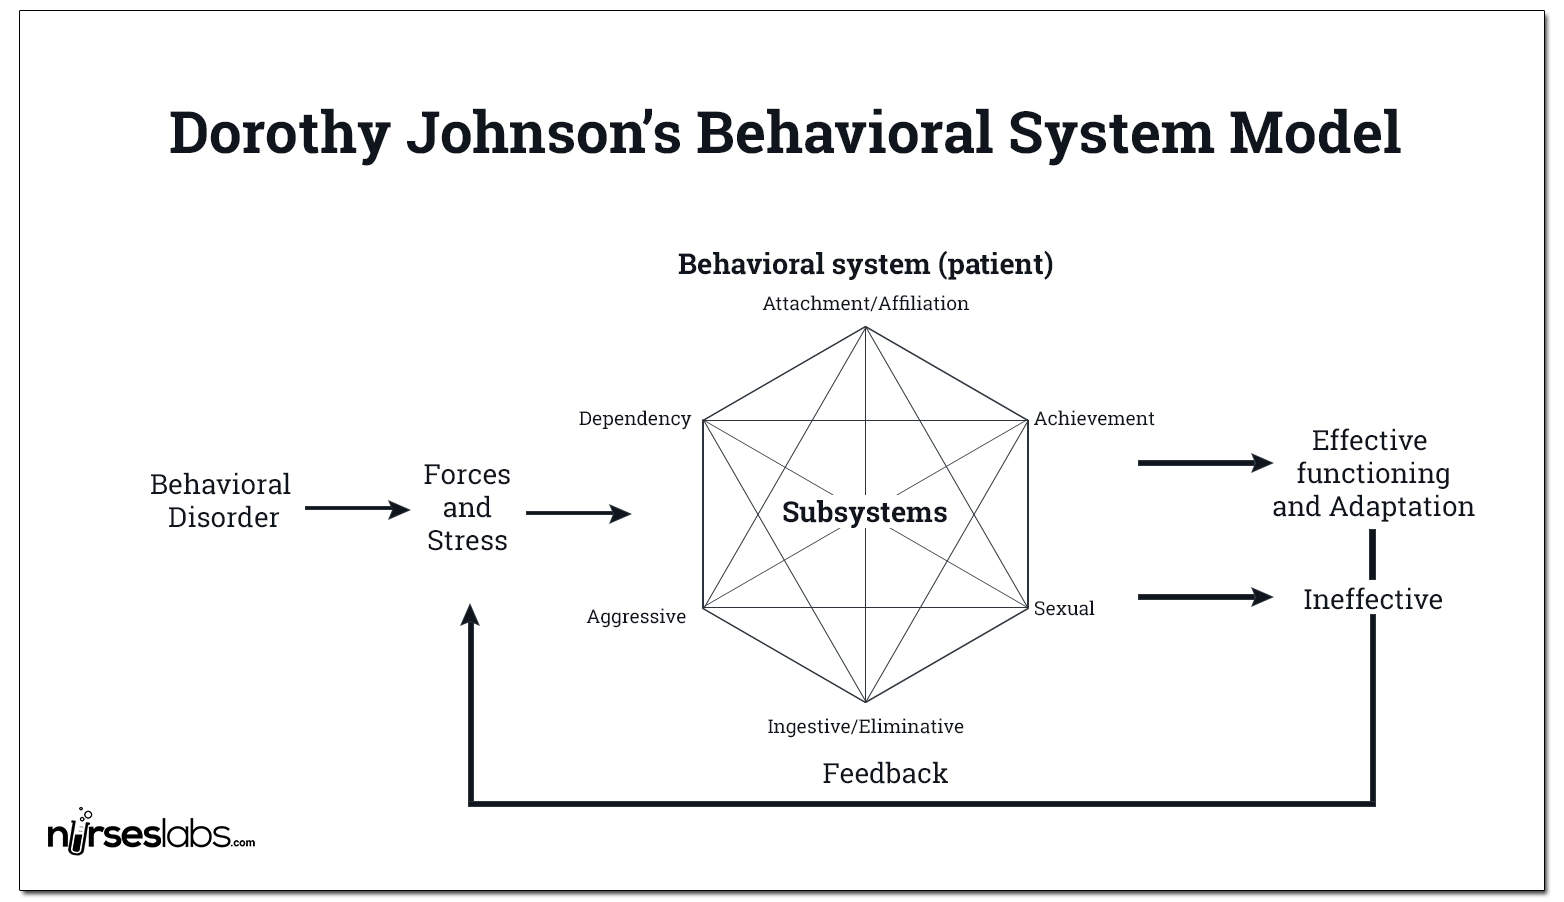 Johnson's Behavioral System Model